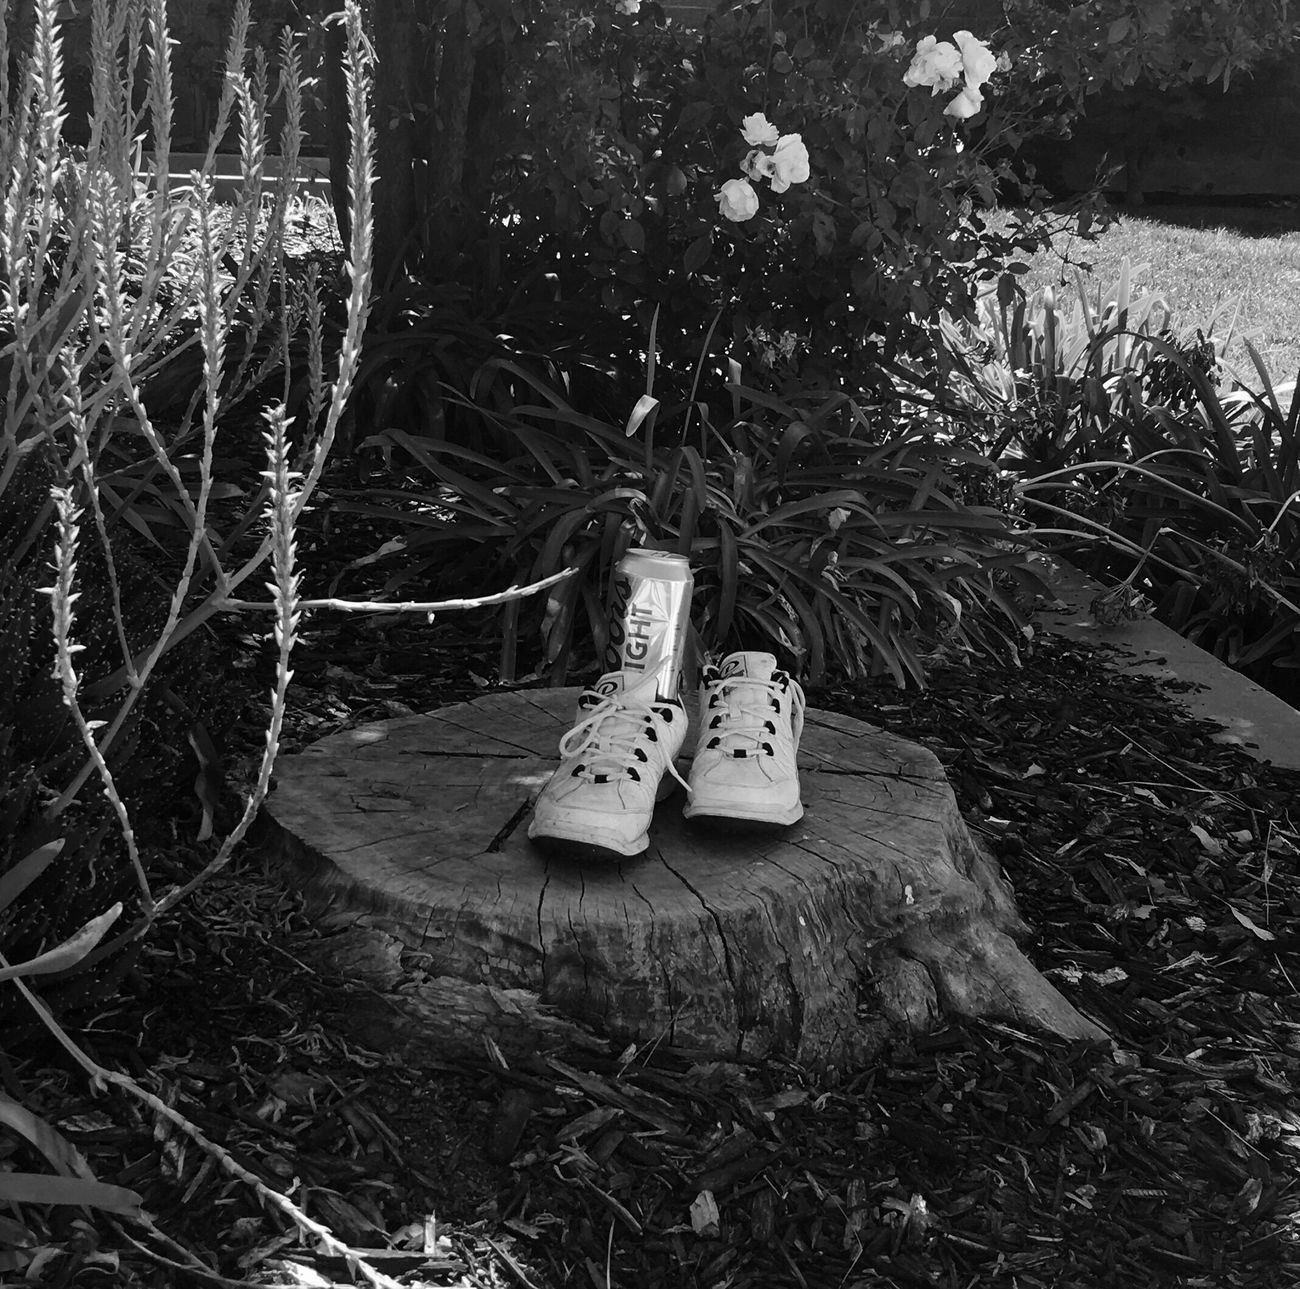 The Missing Shoe Lost Drinks Black And White